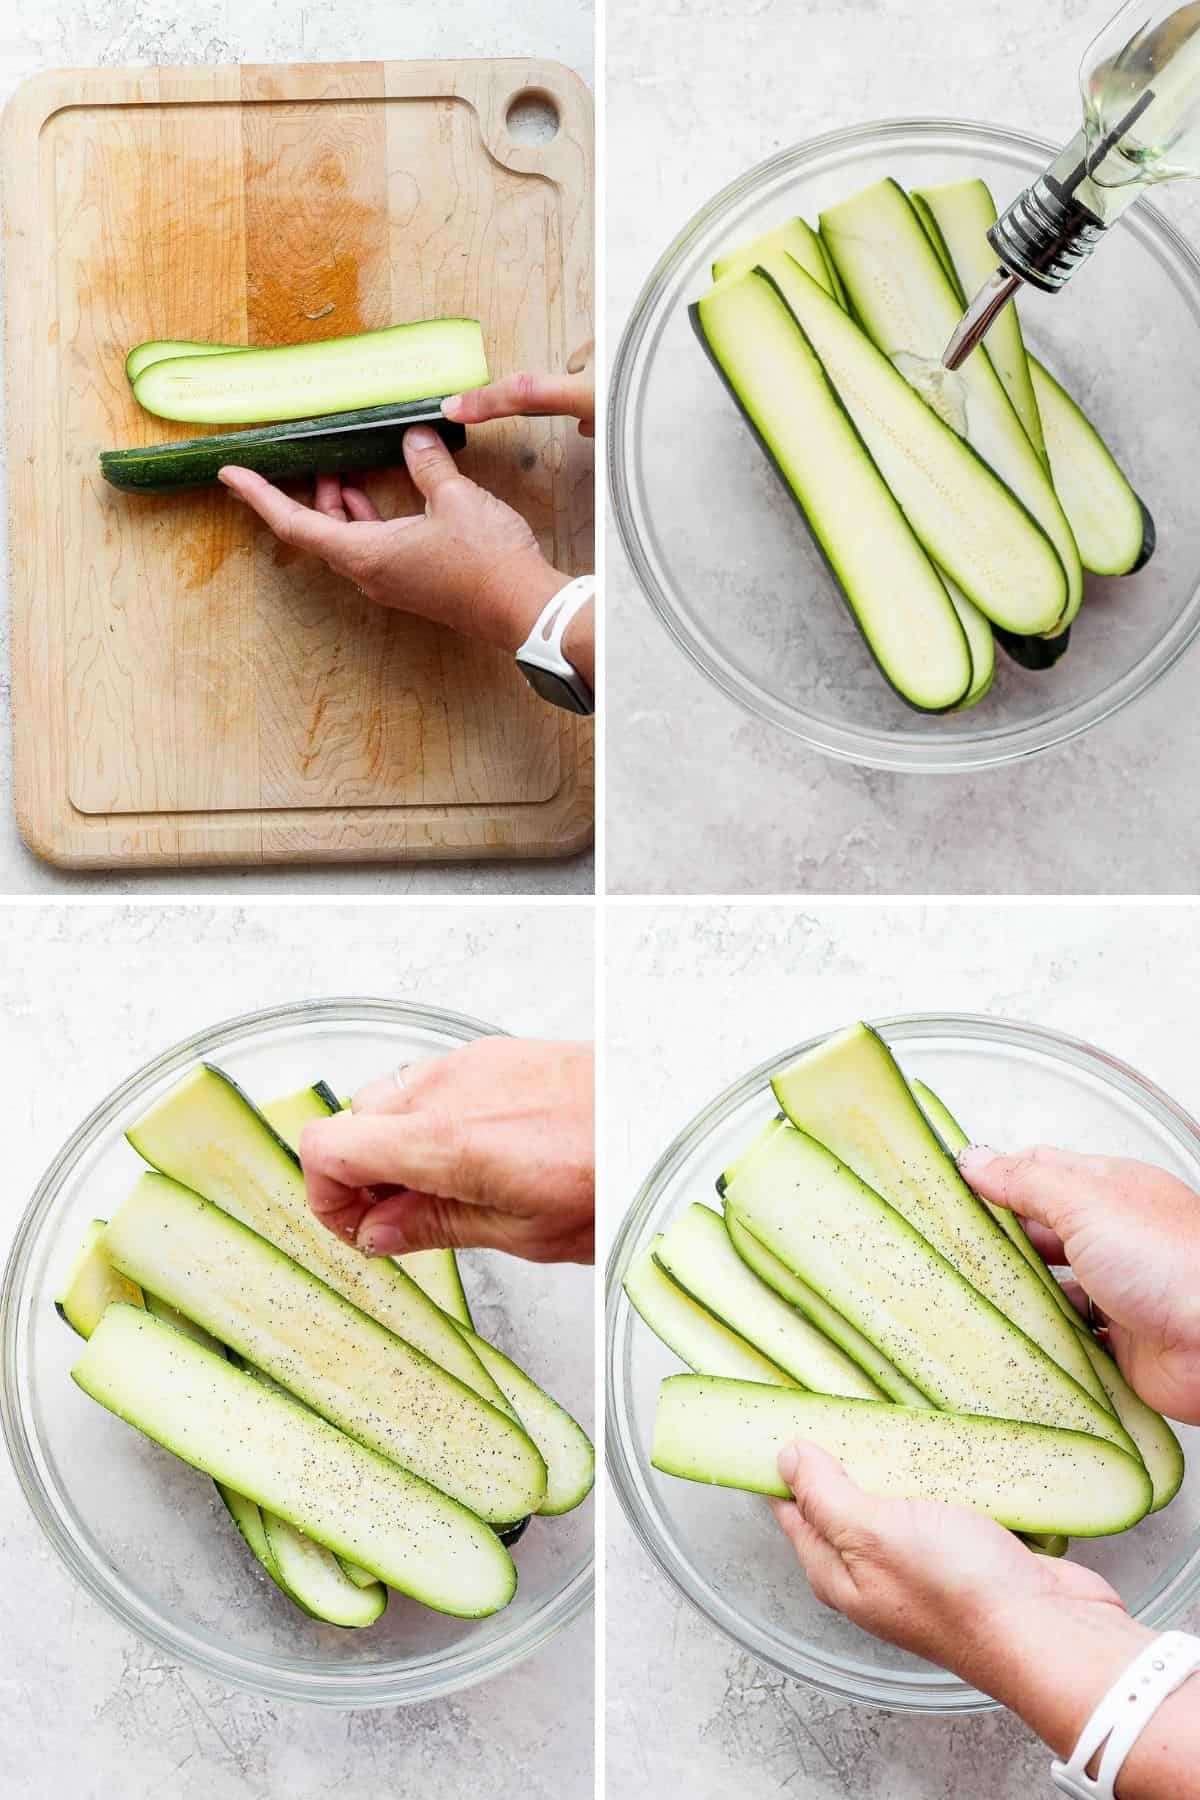 4 image collage to show how to cut the zucchini, add oil to it, season it and toss it to prepare